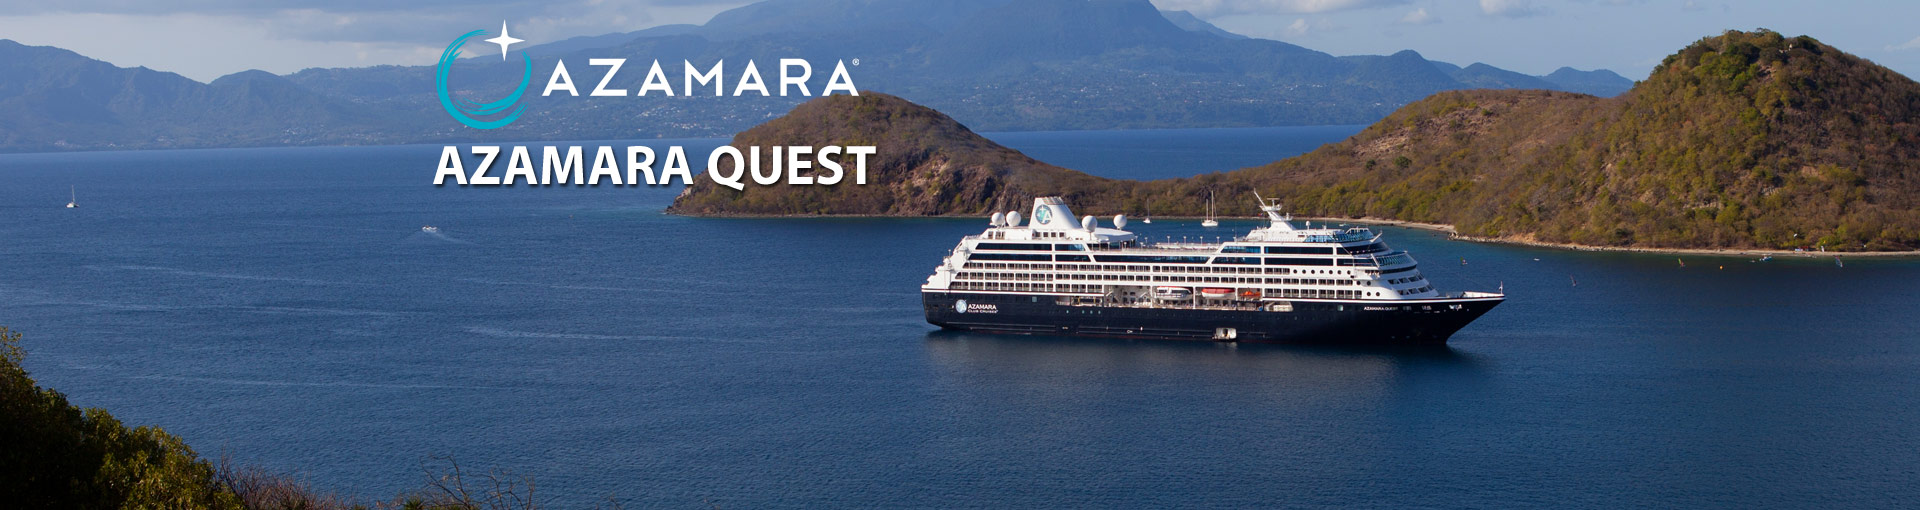 Azamara Quest Cruise Ship, 2018 and 2019 Azamara Quest destinations